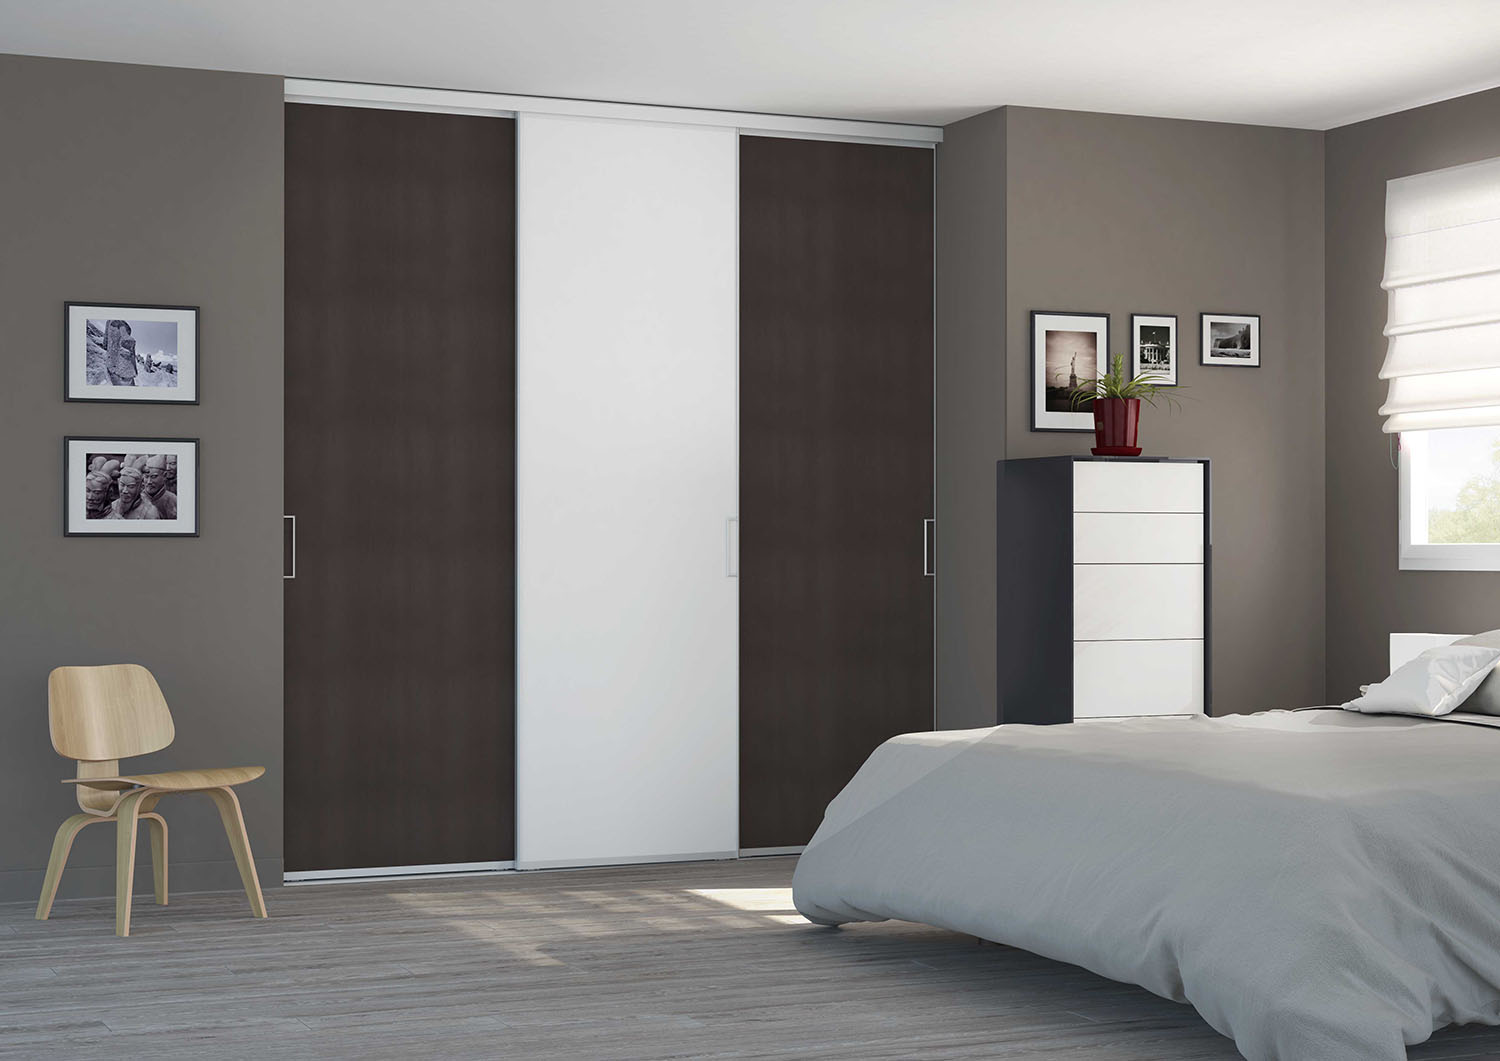 placard moderne chambre porte coulissante placard armoire design personnalis chambre dressing. Black Bedroom Furniture Sets. Home Design Ideas